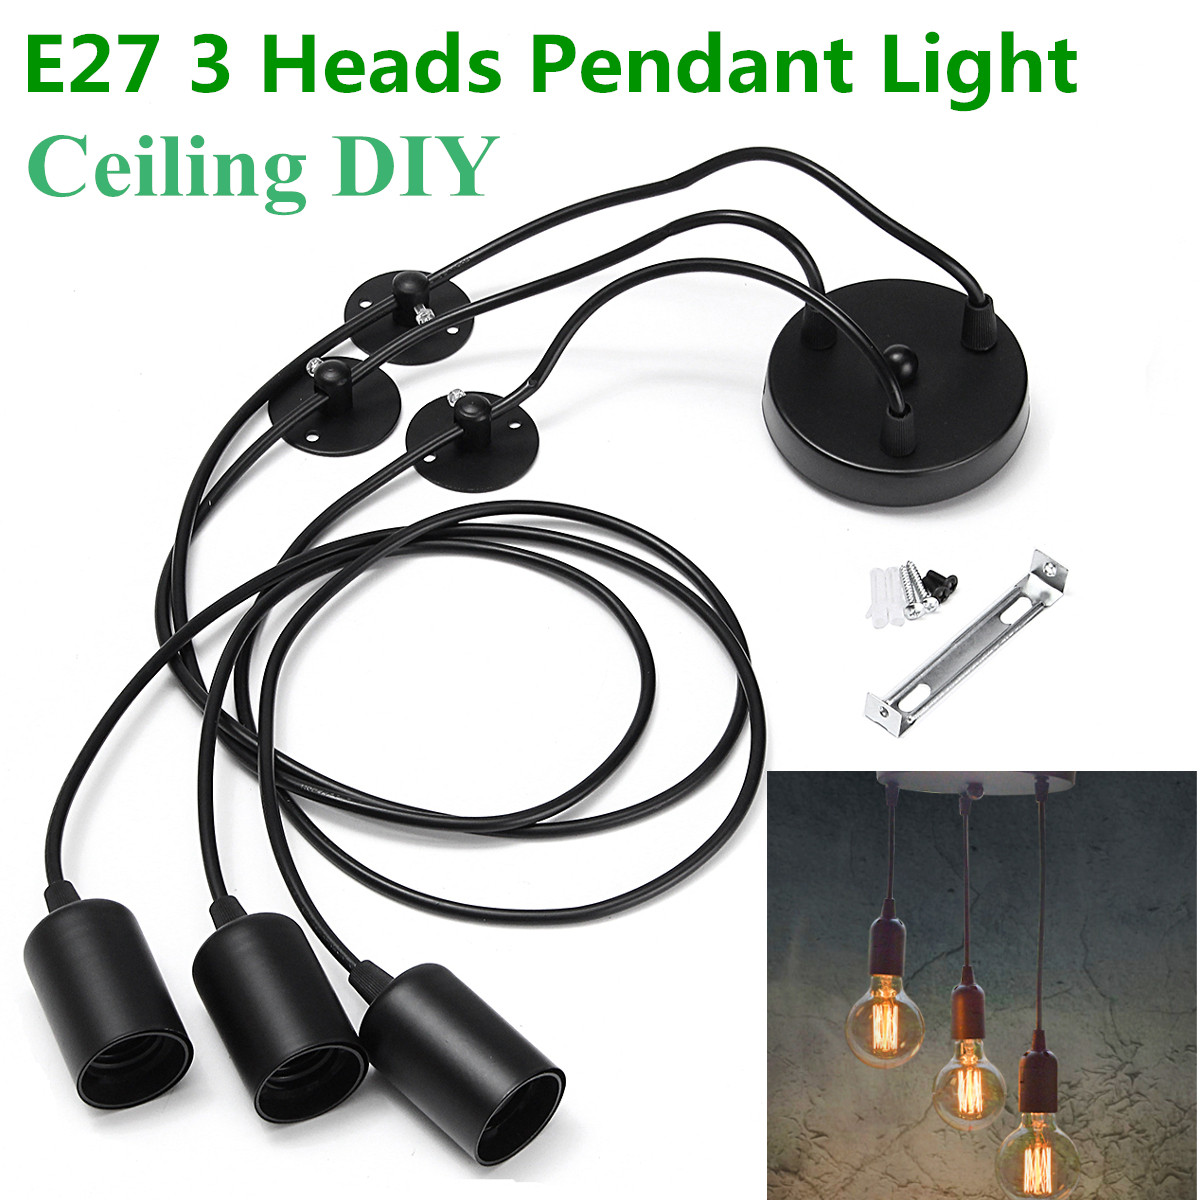 Smuxi Black E27 3 Heads Pendant Light Vintage Industrial Edison Ceiling Lamp  Dining Lighting Retro Pendant Lamp